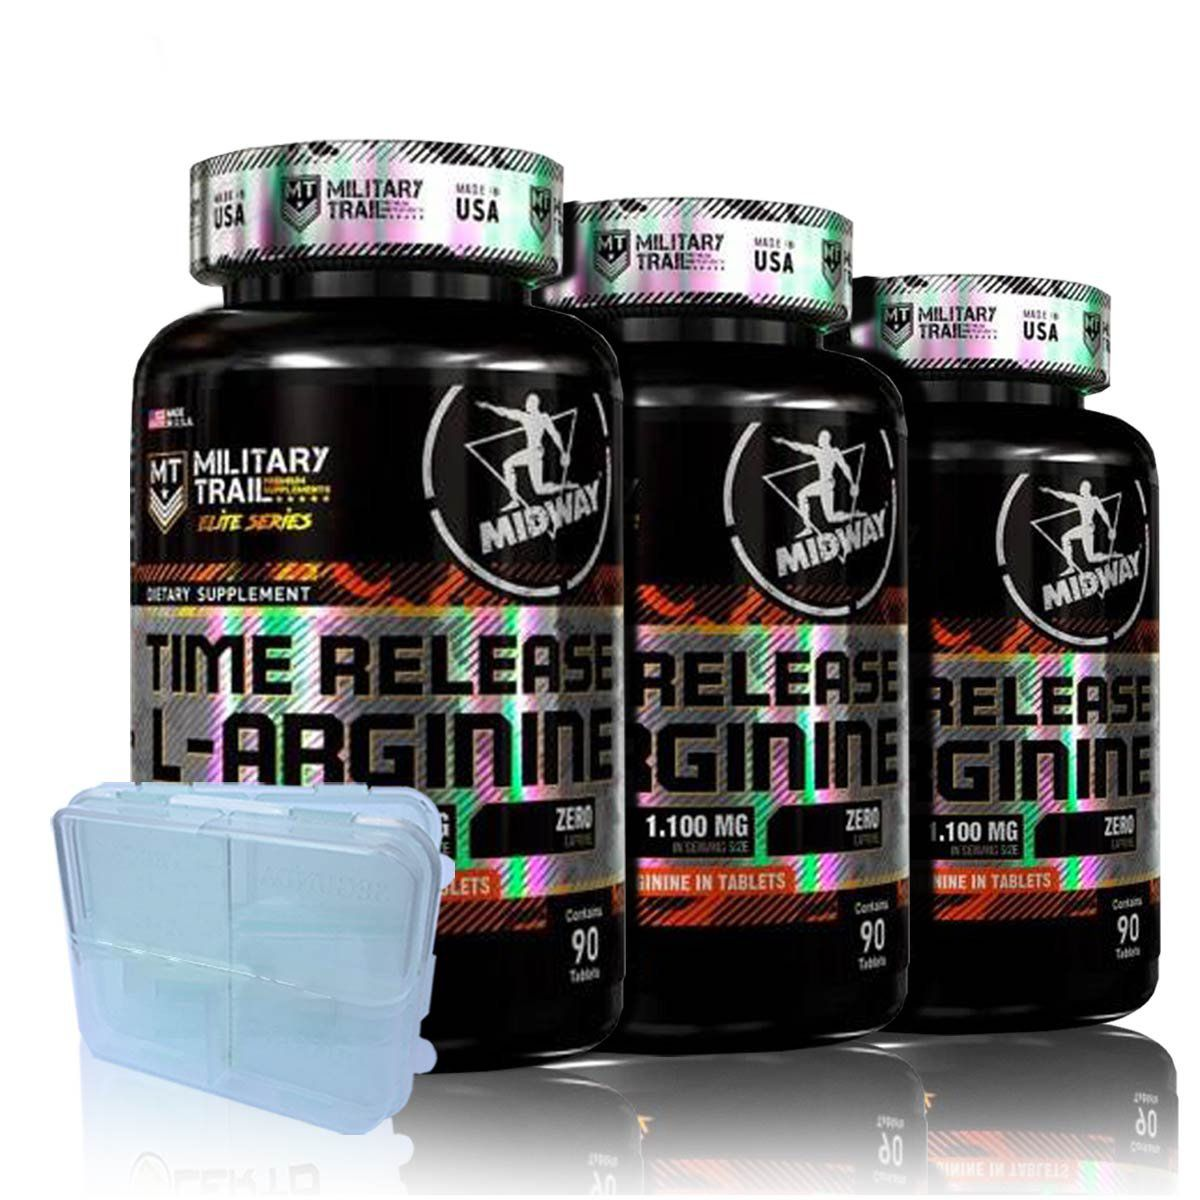 3x Arginine Time Release 90 tabs + Porta Caps - Midway Labs Military Trail